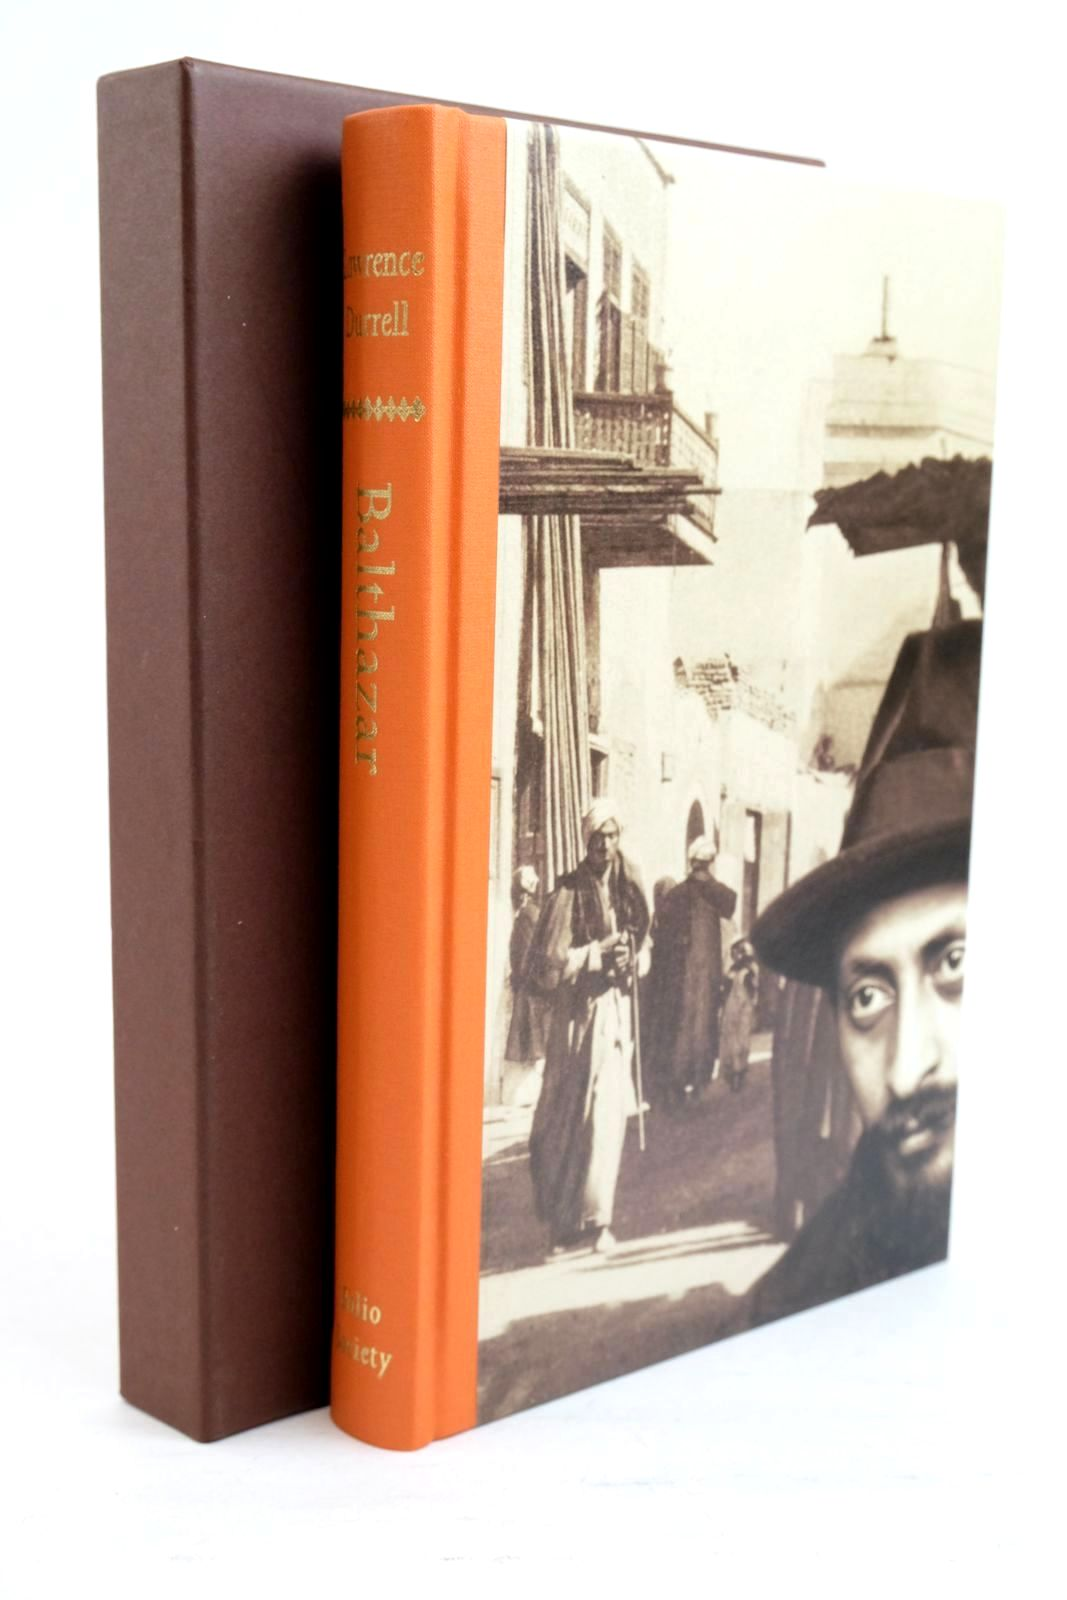 Photo of BALTHAZER written by Durrell, Lawrence published by Folio Society (STOCK CODE: 1320856)  for sale by Stella & Rose's Books